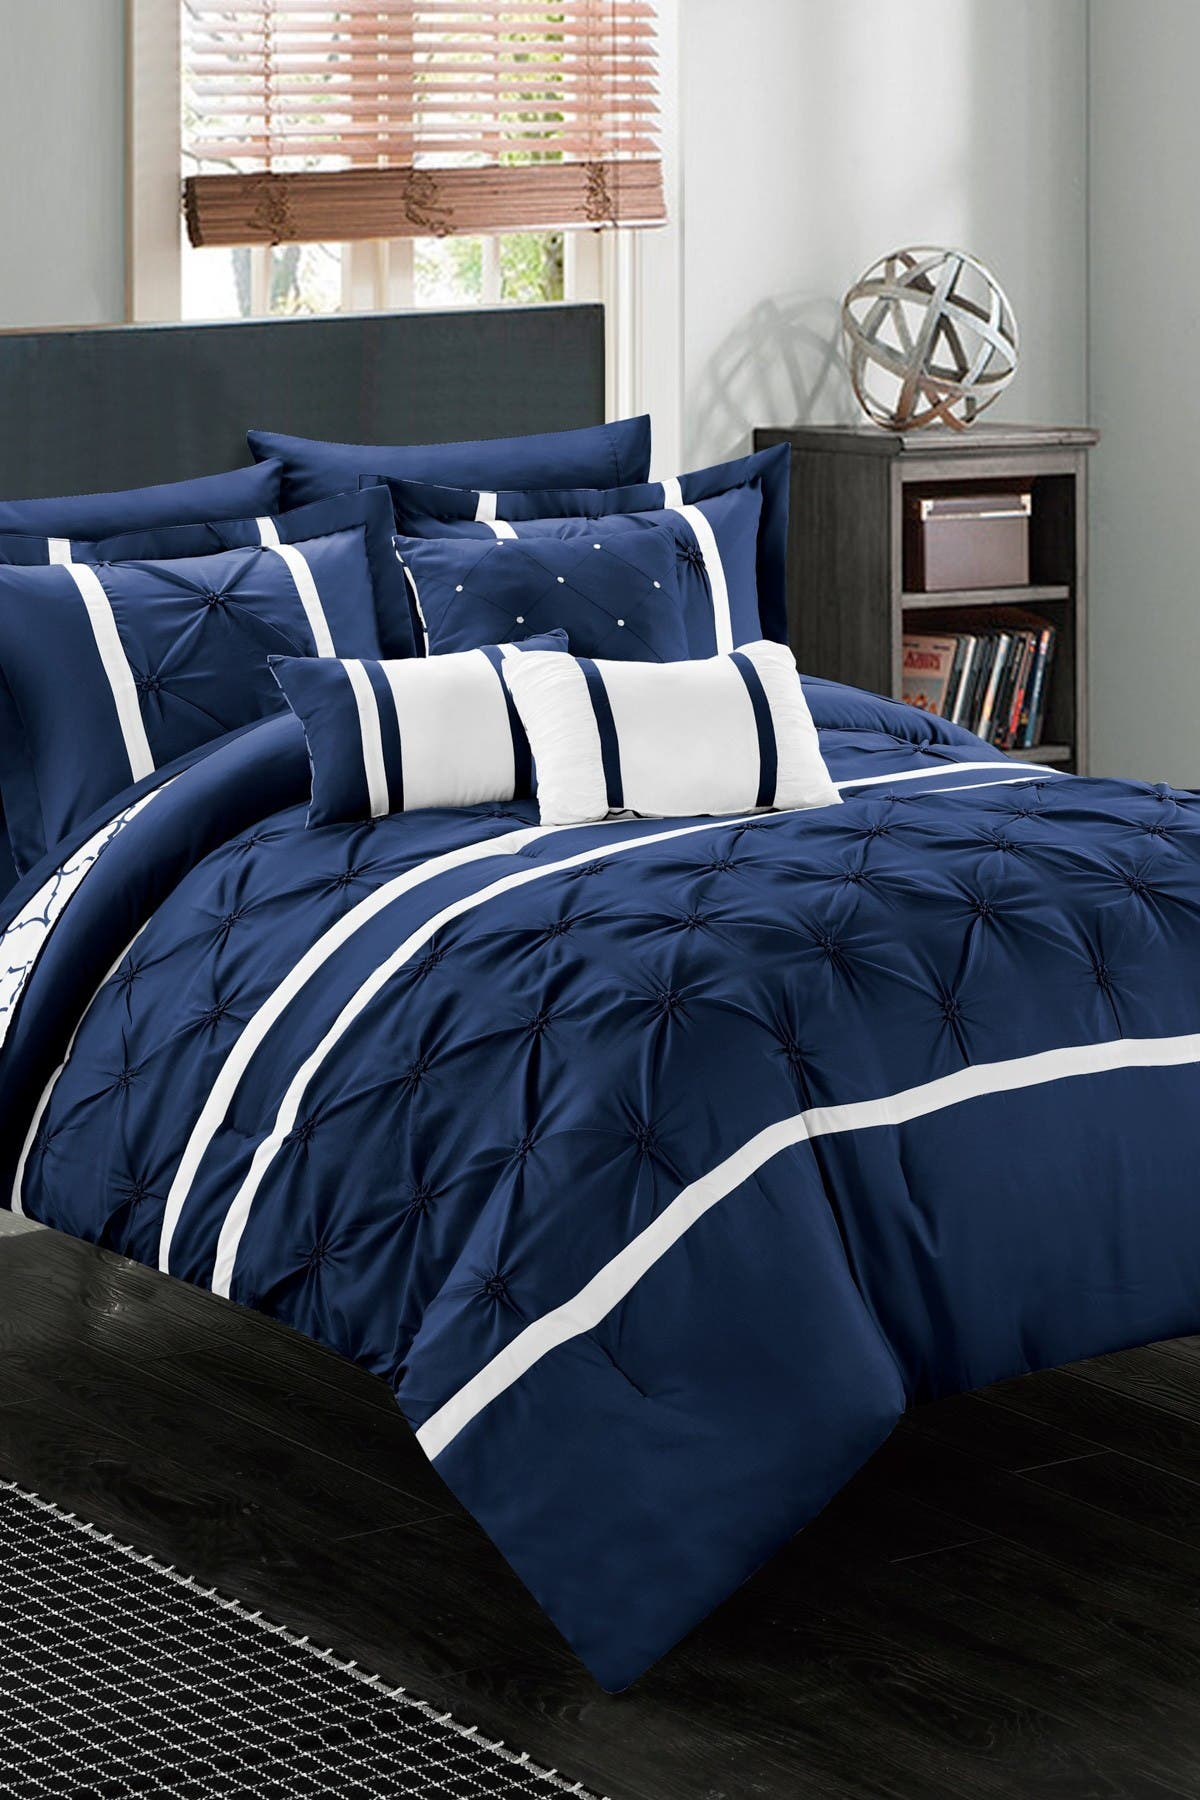 Image of Chic Home Bedding Navy Queen Plymouth Pinch Pleated Reversible Geometric 10-Piece Bed in a Bag Set